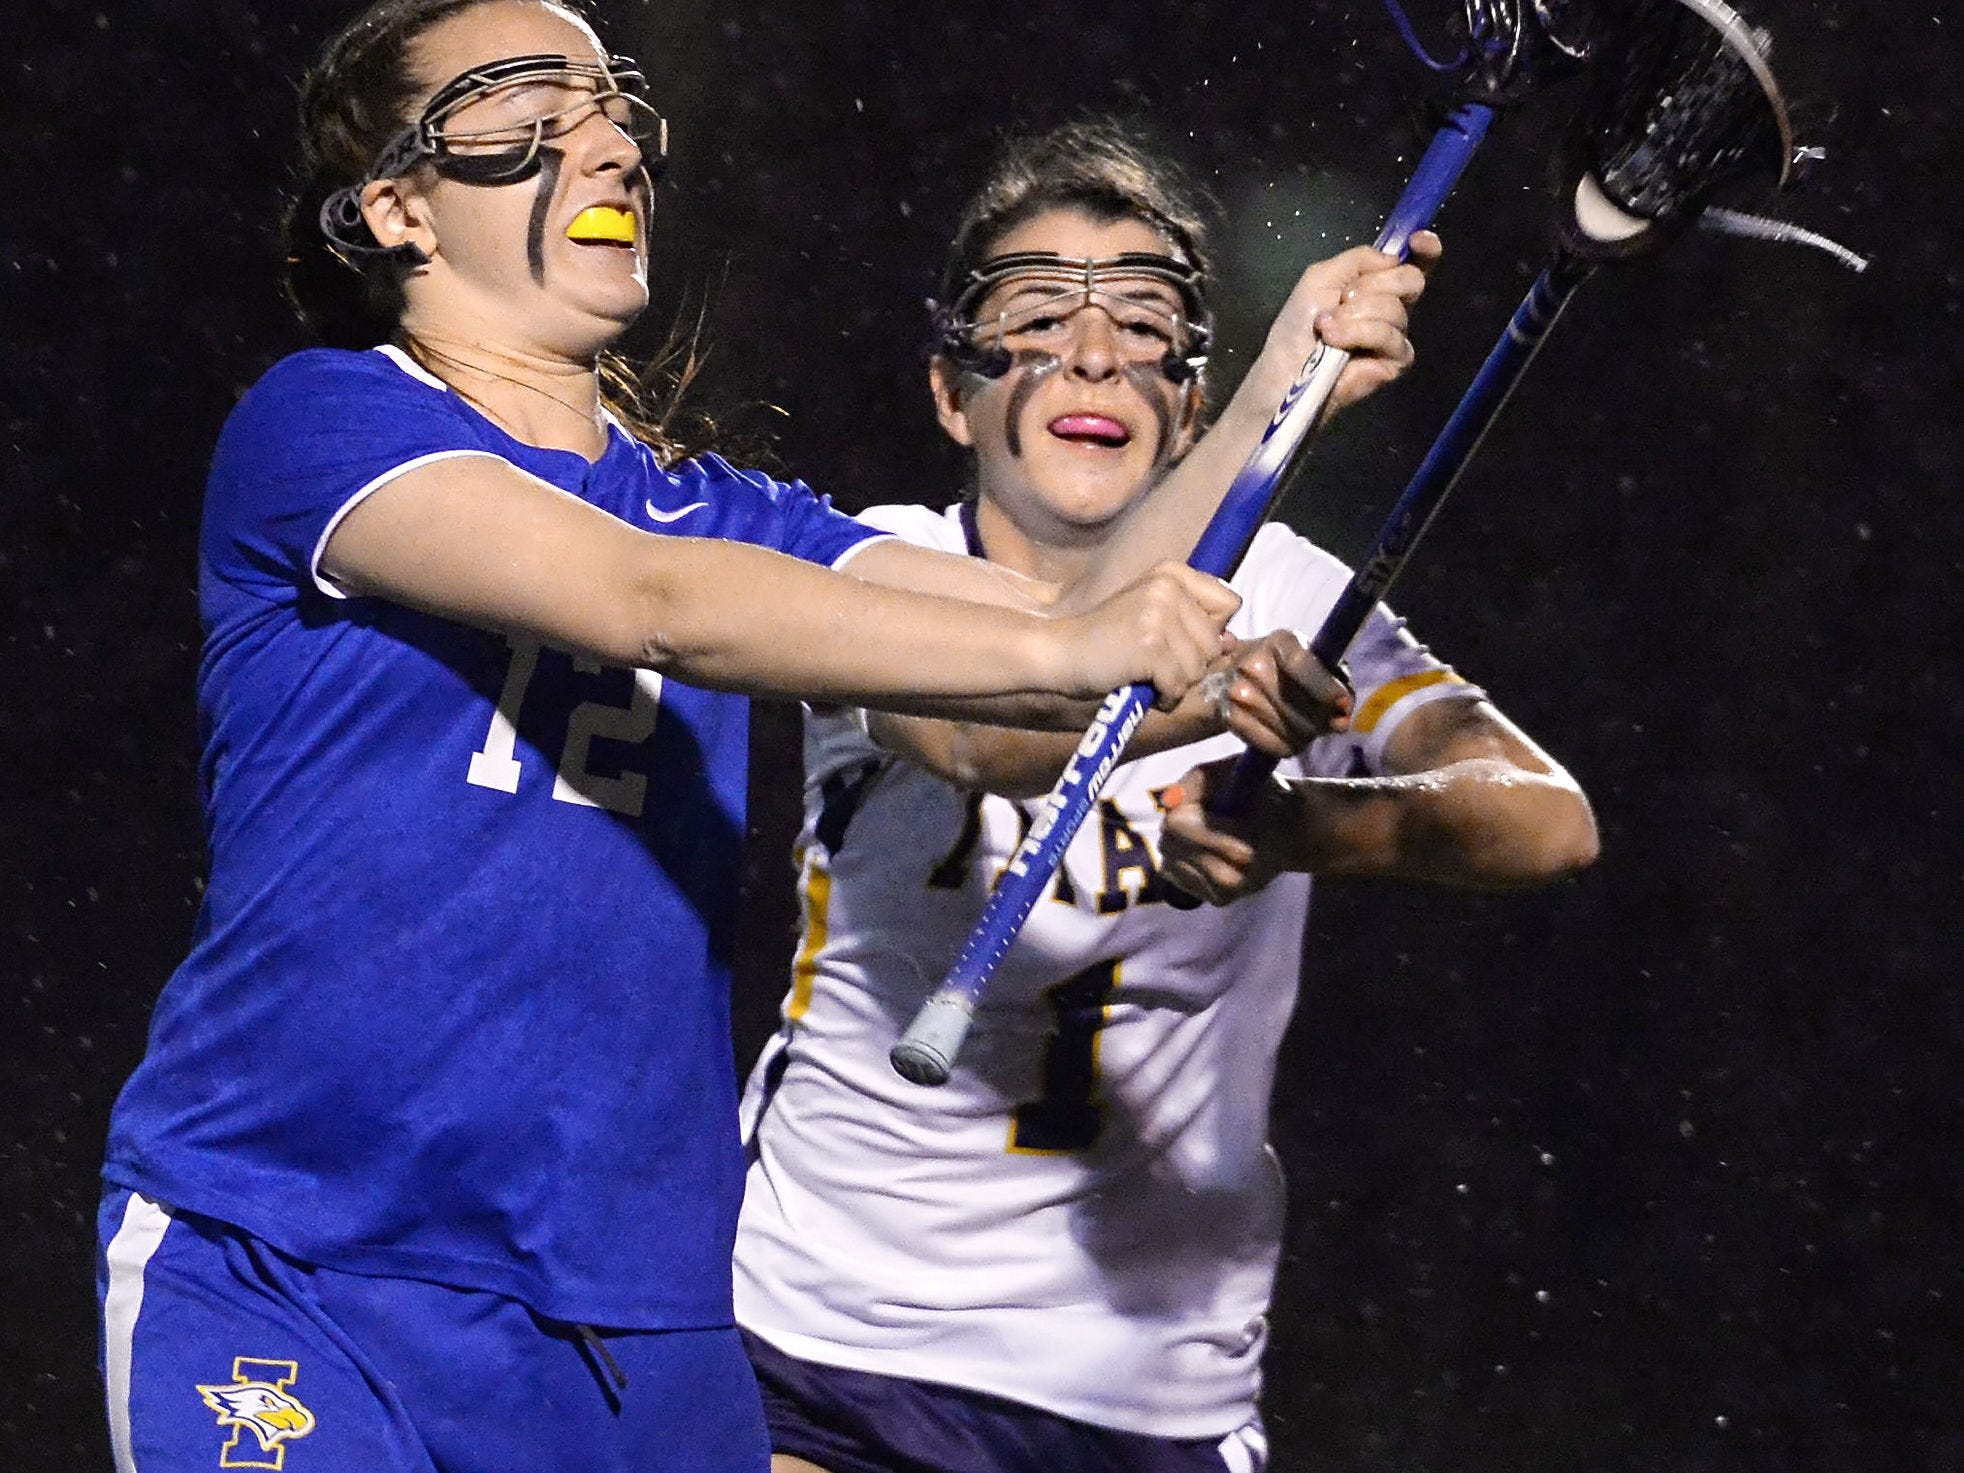 Irondequoit's Ari Torpey, left, gets a pass away while pressured by Webster Thomas' Mackenzie Travis.